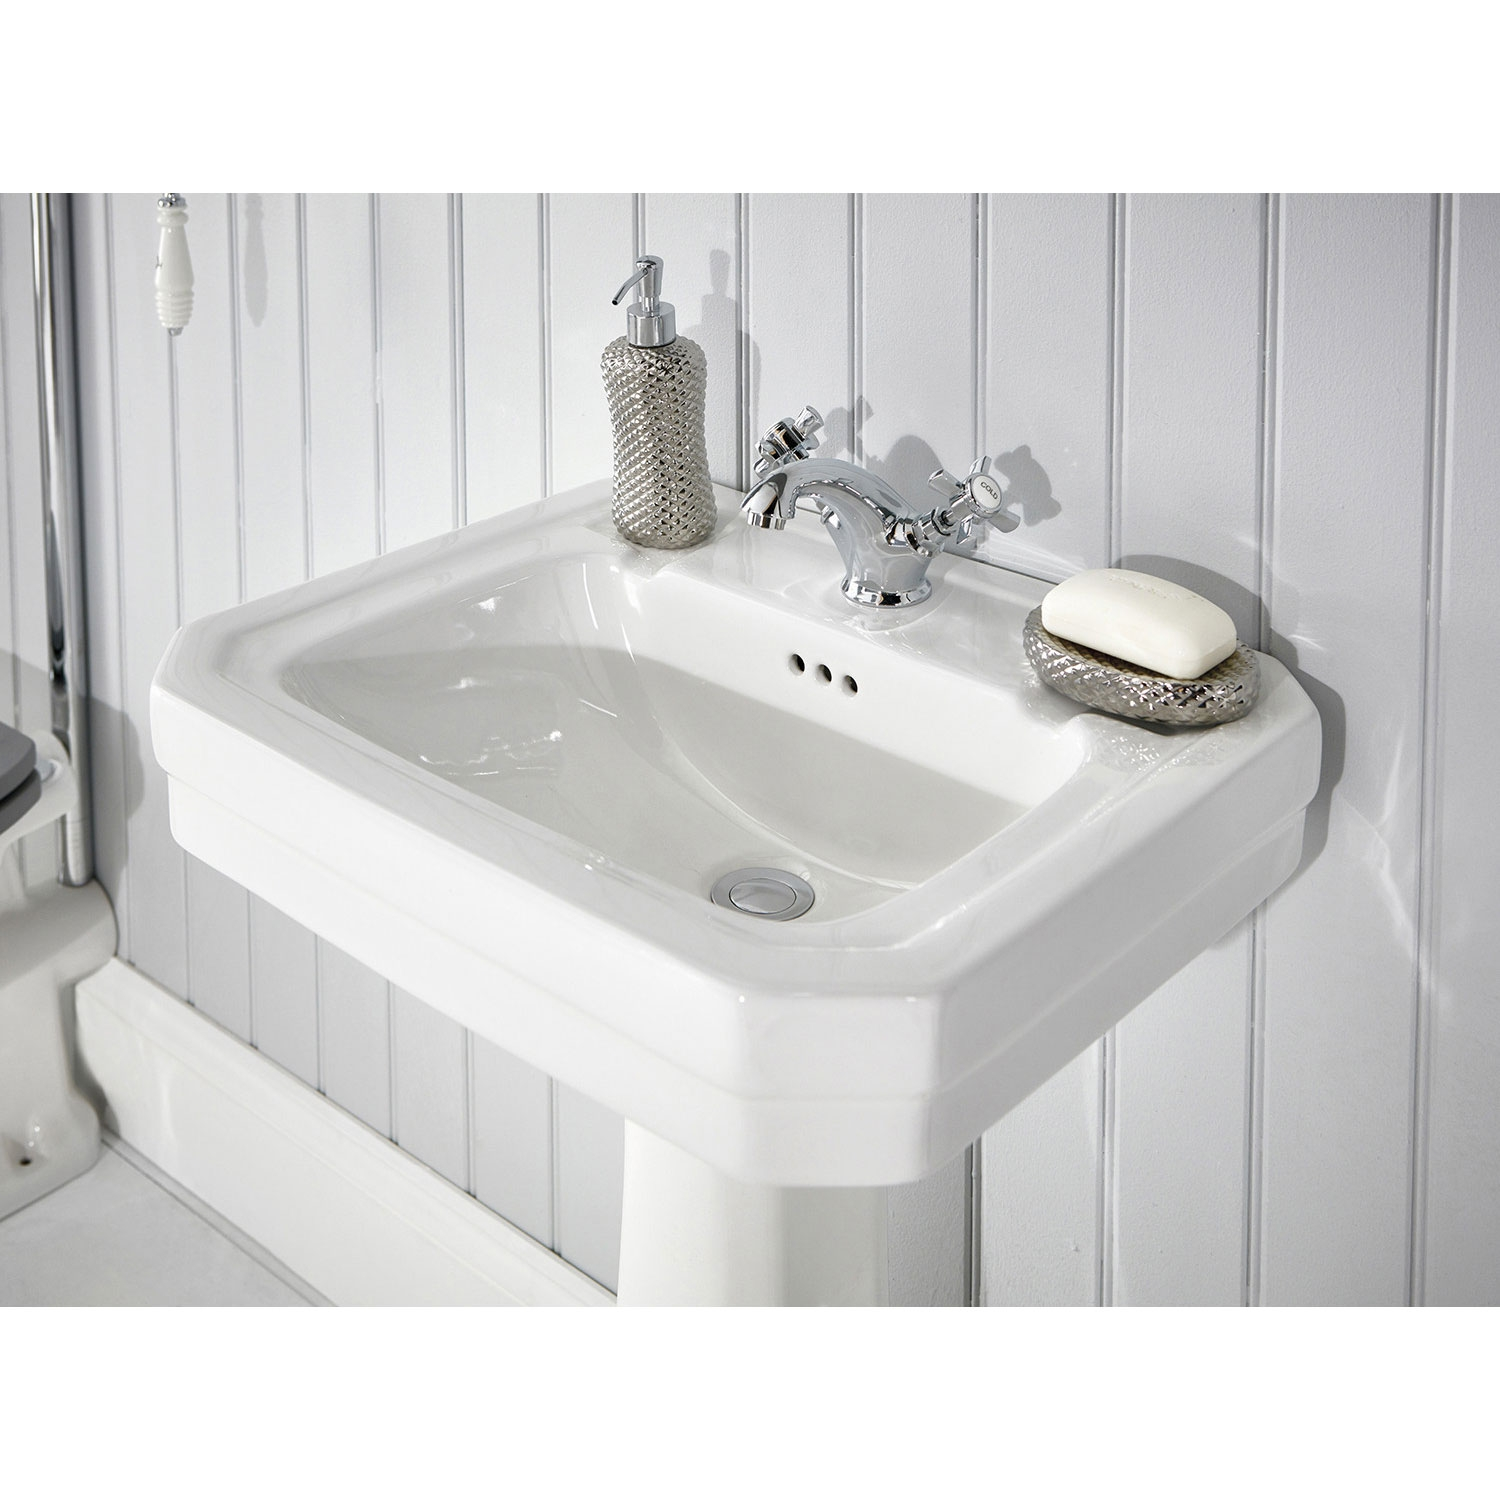 Verona Holborn Basin with Full Pedestal 550mm Wide - 1 Tap Hole